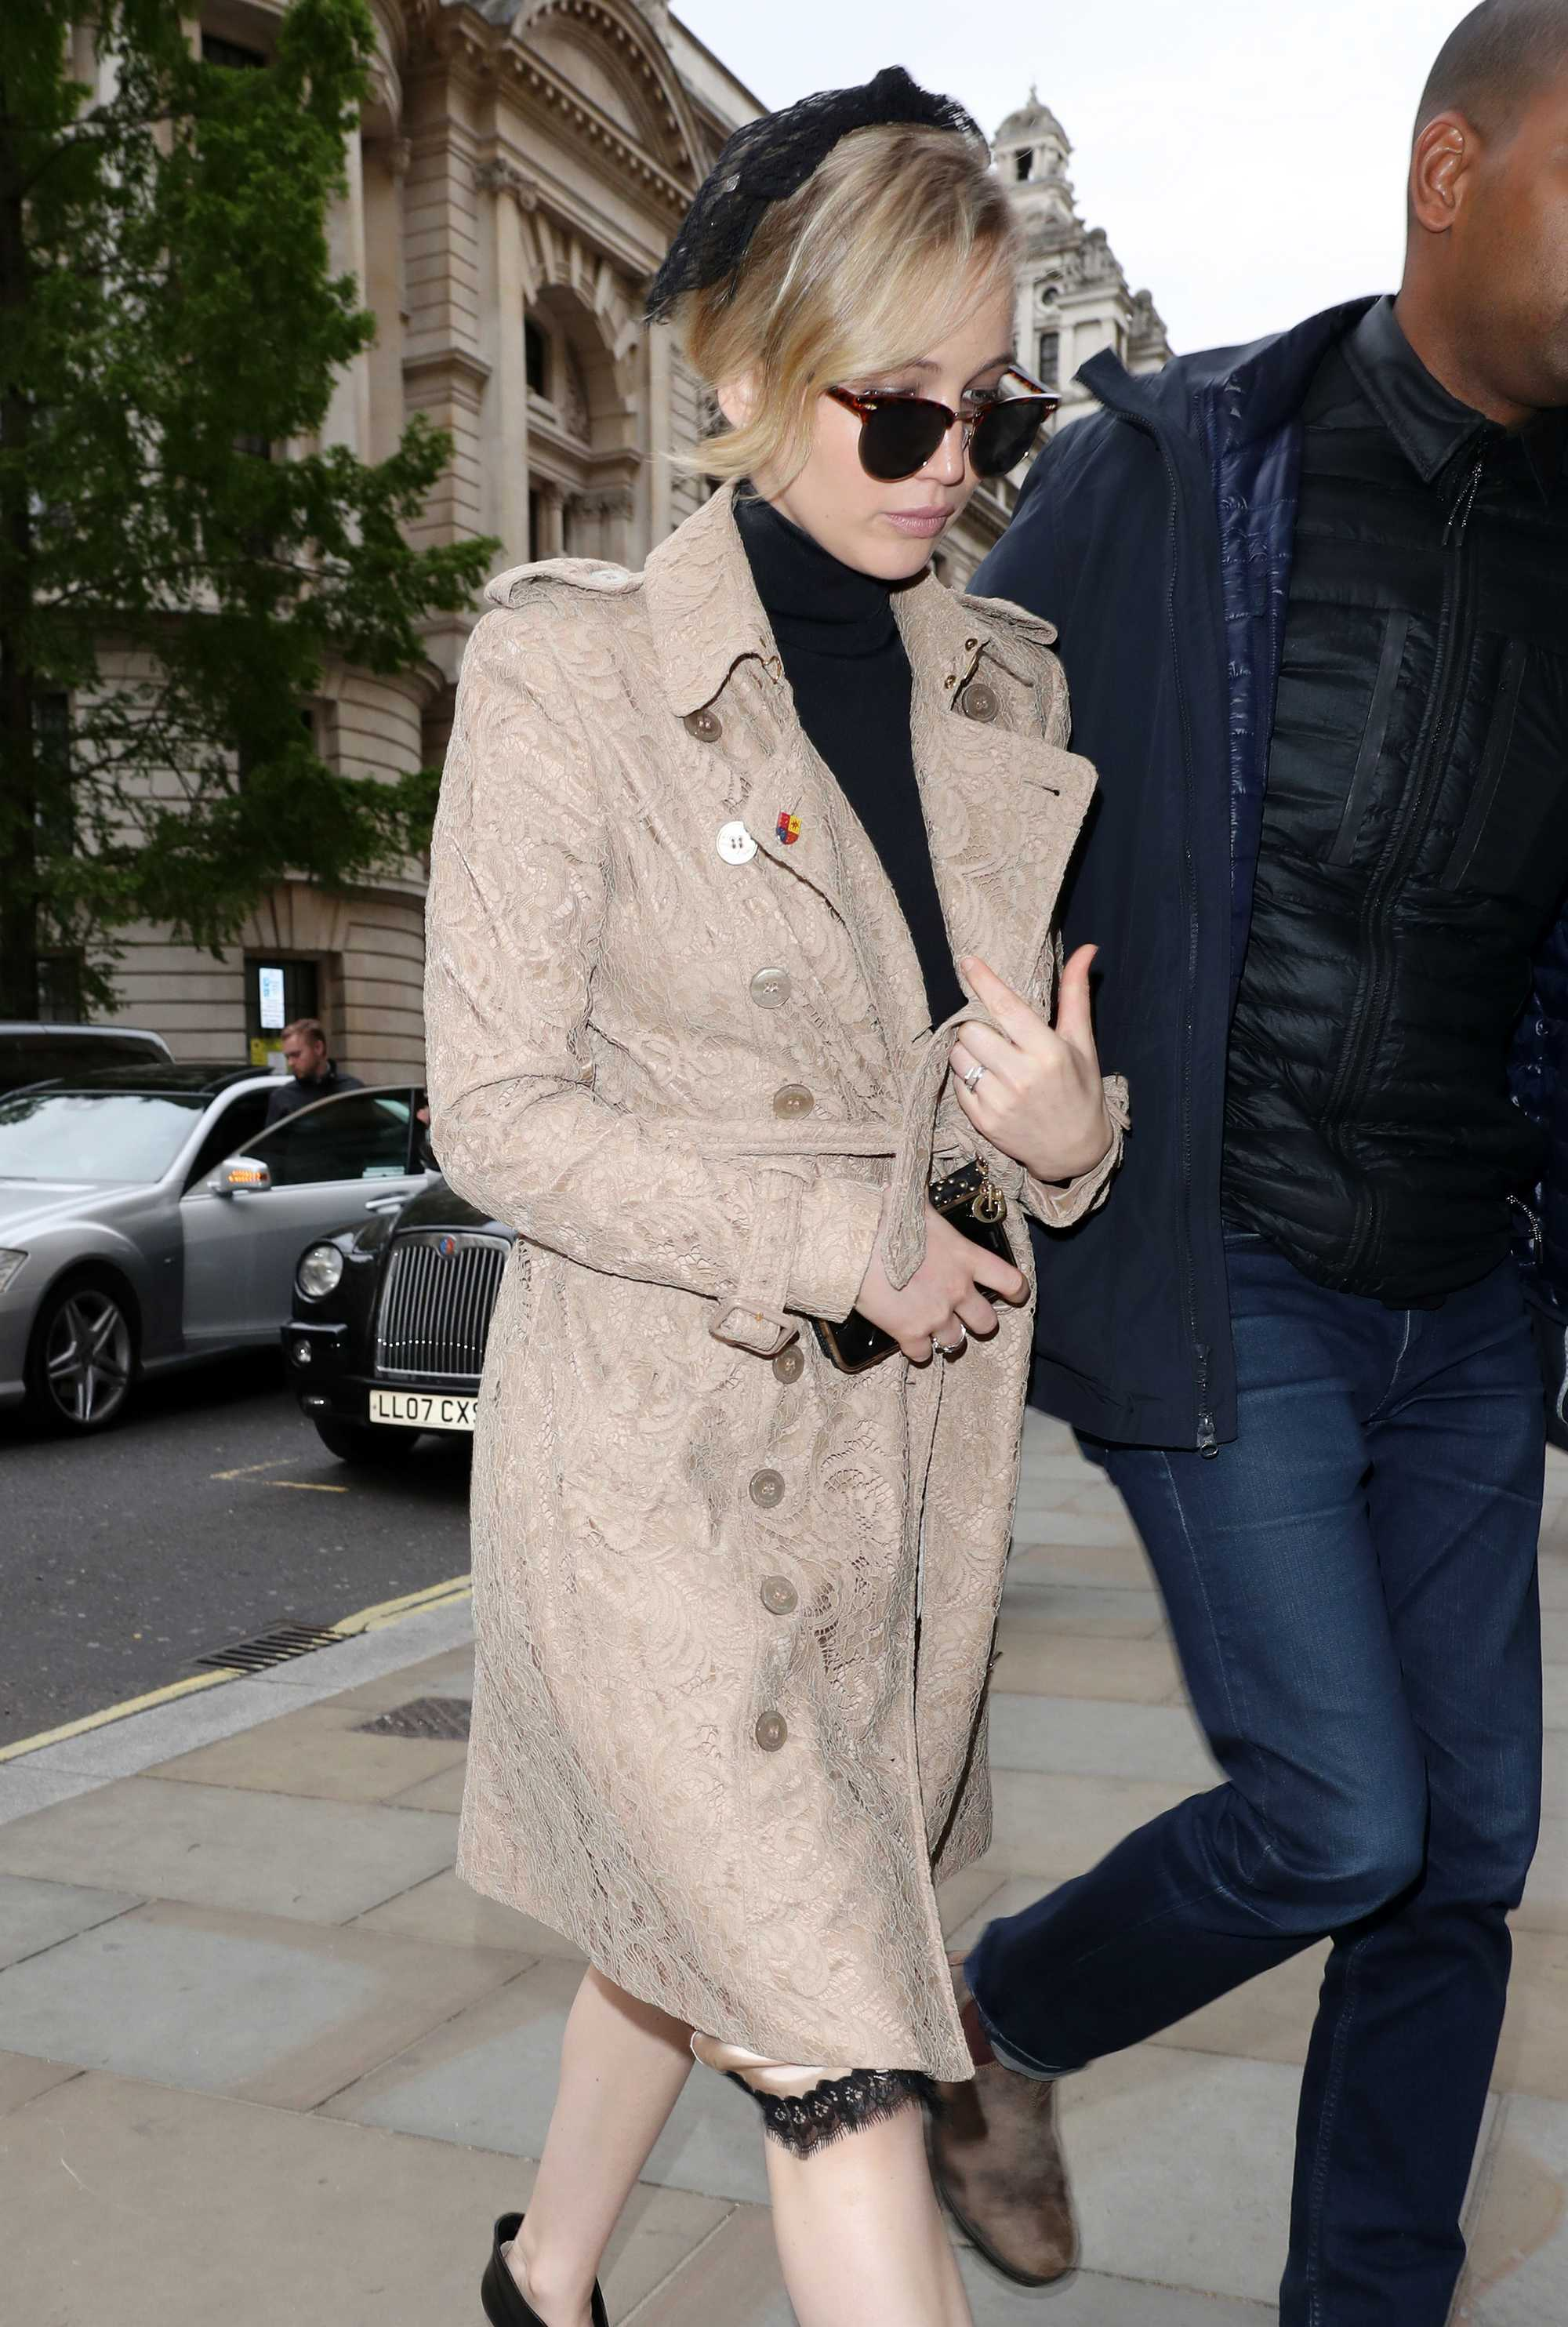 http://jenniferlawrencedaily.com/gallery/albums/userpics/10001/Jennifer_Lawrence_-_At_A_Meeting_in_London_on_May_8-04.jpg